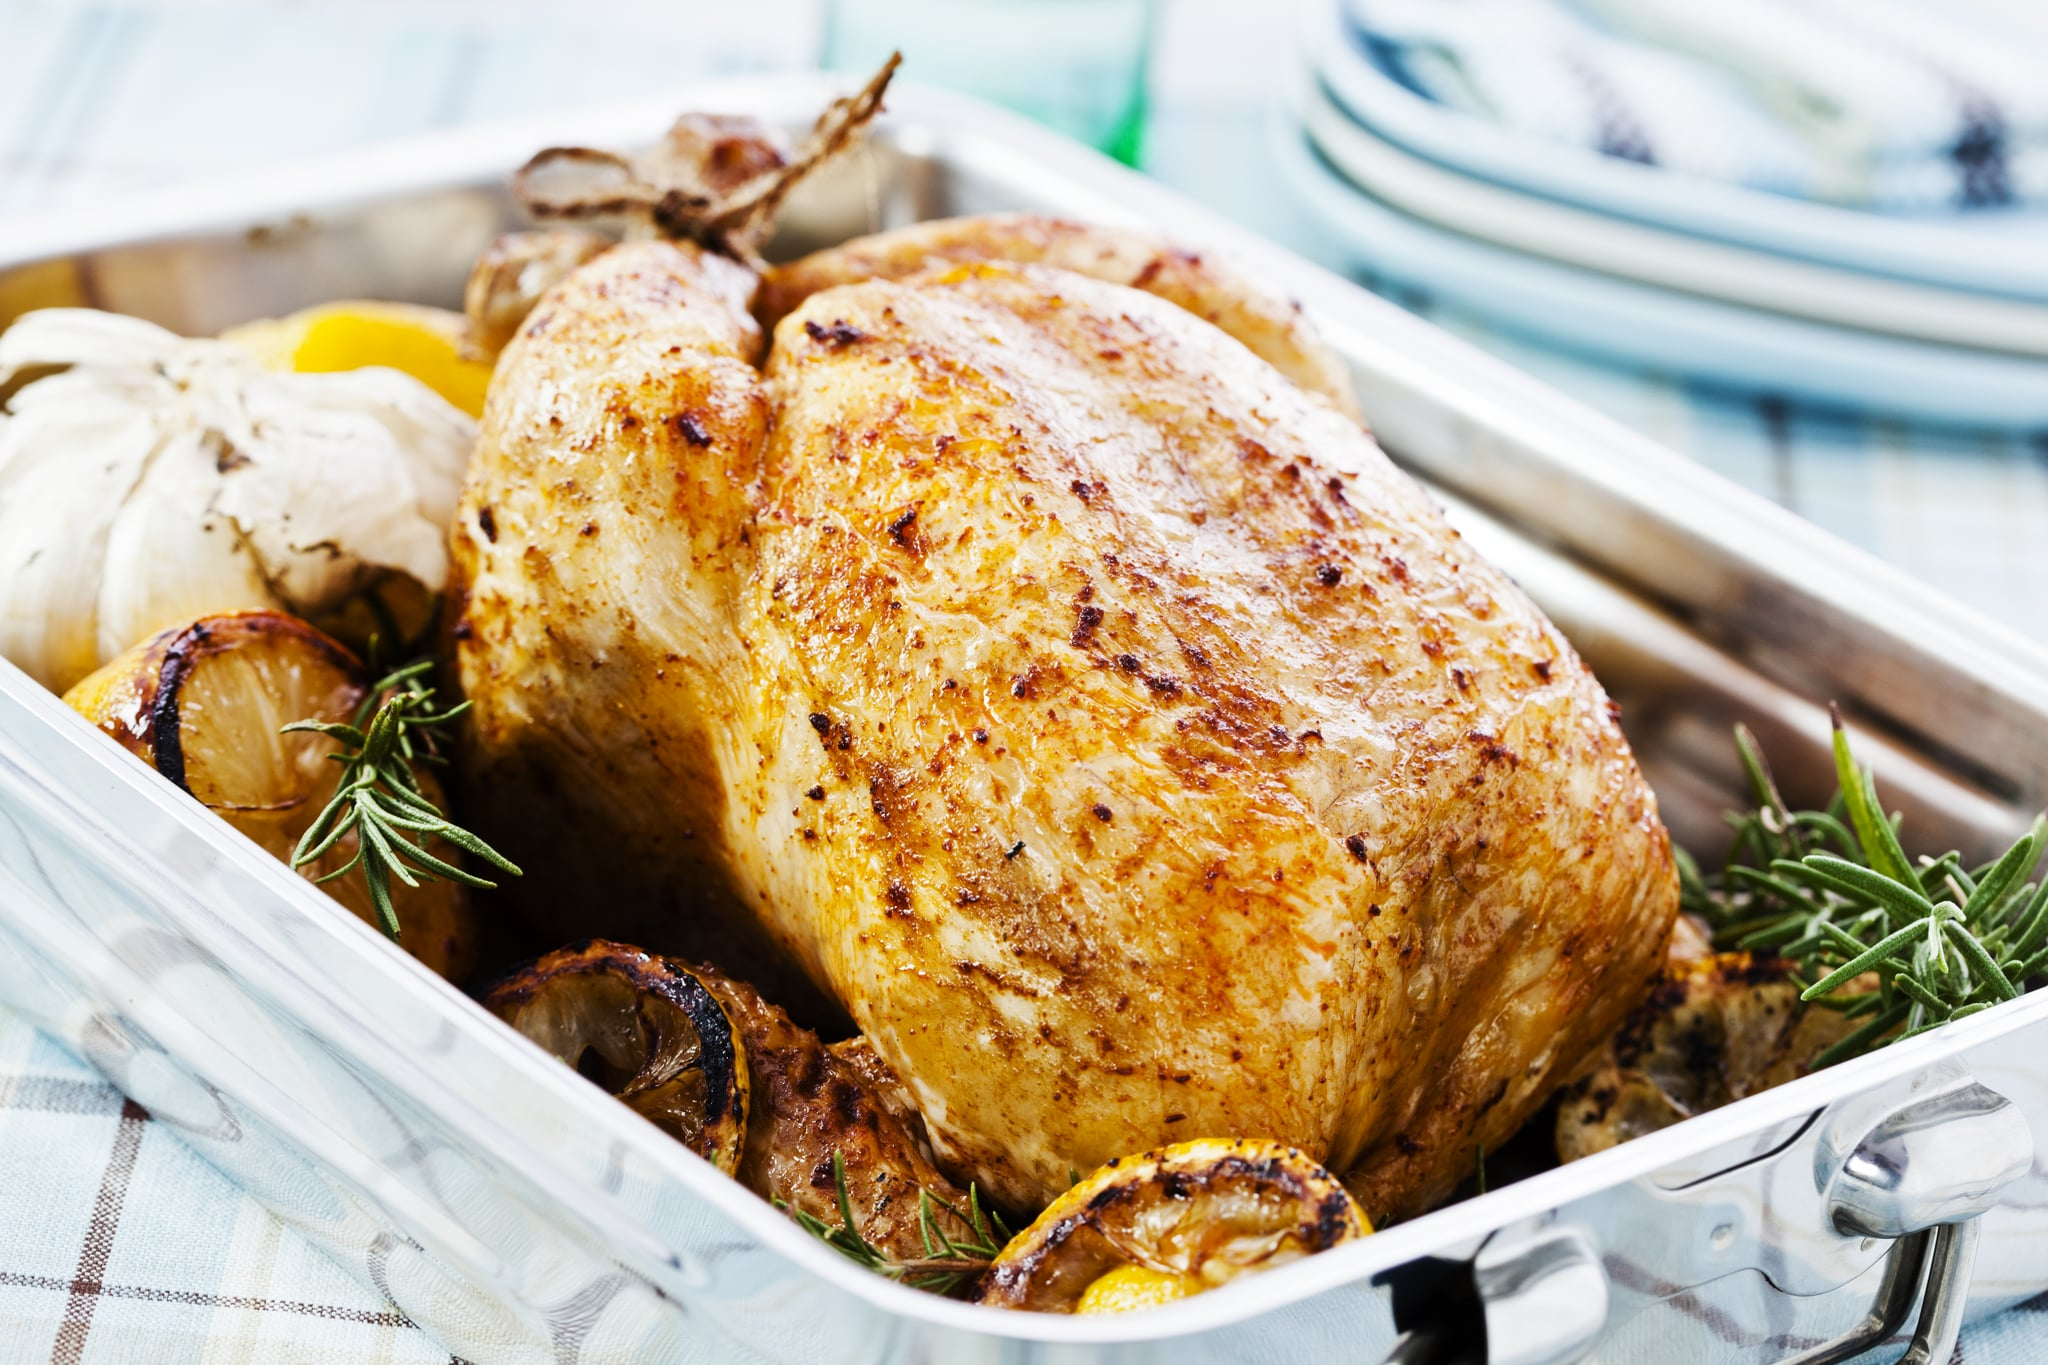 Roasted chicken in a pan with lemon, garlic and rosemary